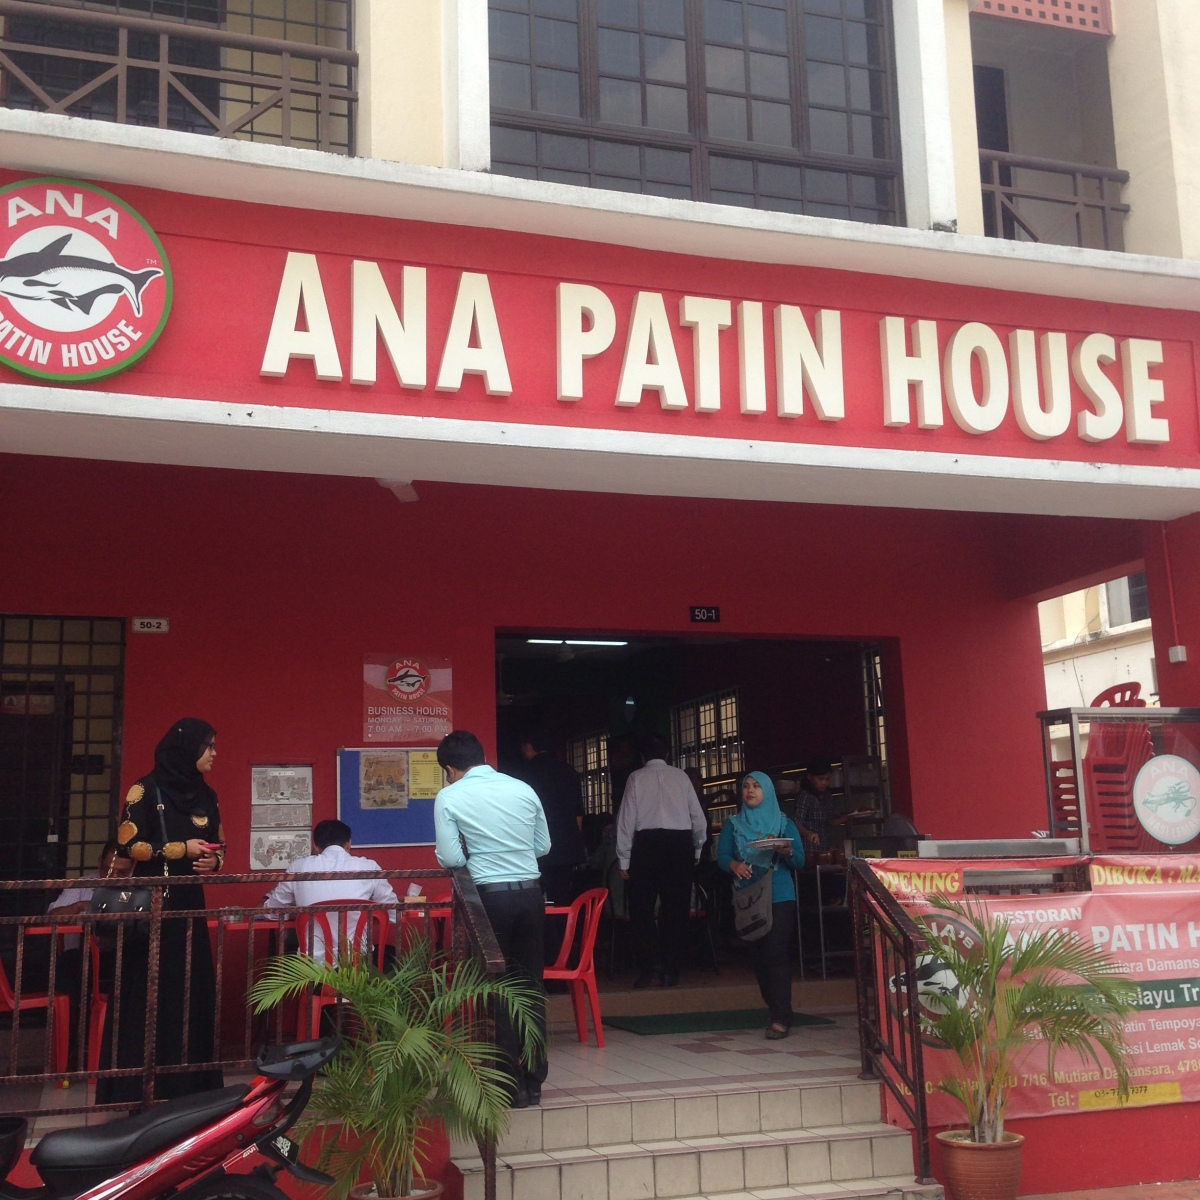 Ana Patin House